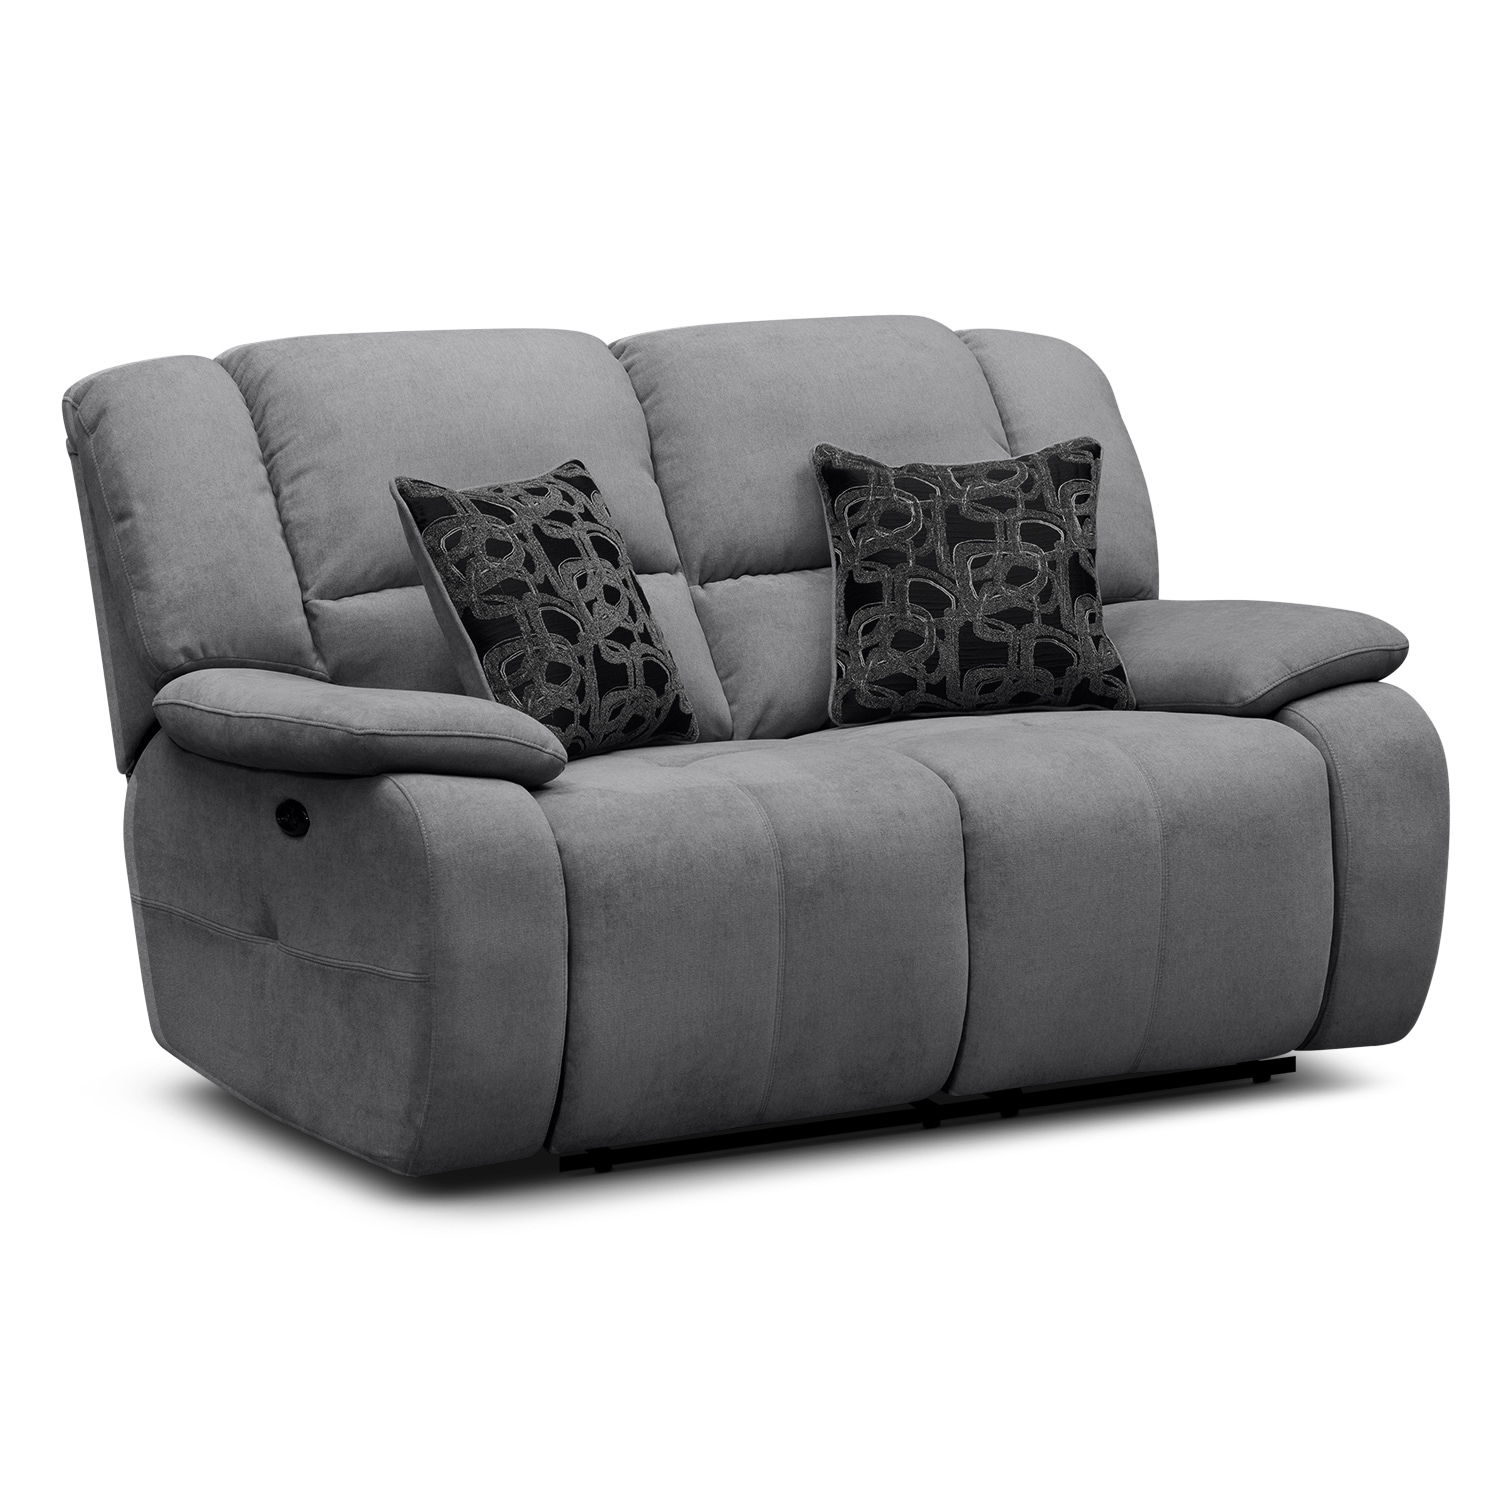 Destin Gray Upholstery Power Reclining Loveseat Value City Furniture